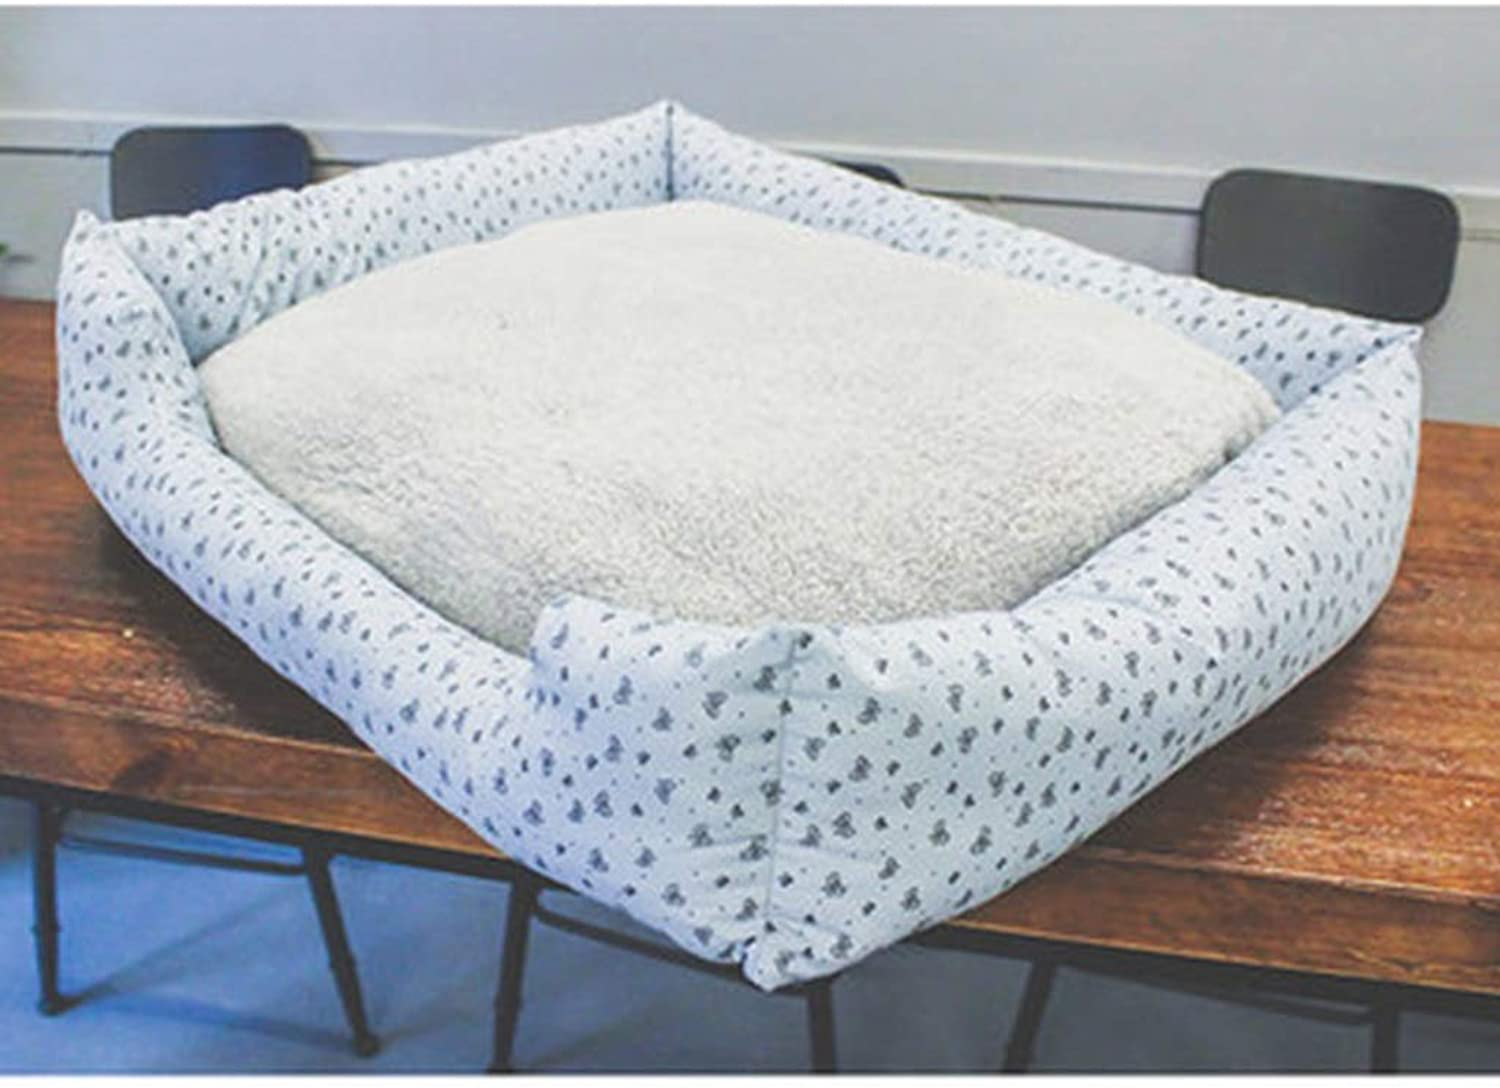 Dogs Beds Furniture Bed Blankets Dog Bed, Mattress, Pet Nest, Cat's Nest, Fashion, Washable, Cat House, Pet Supplies, Pet Bed, Doghouse, Dog House, Plush (color   bluee, Size   XL)